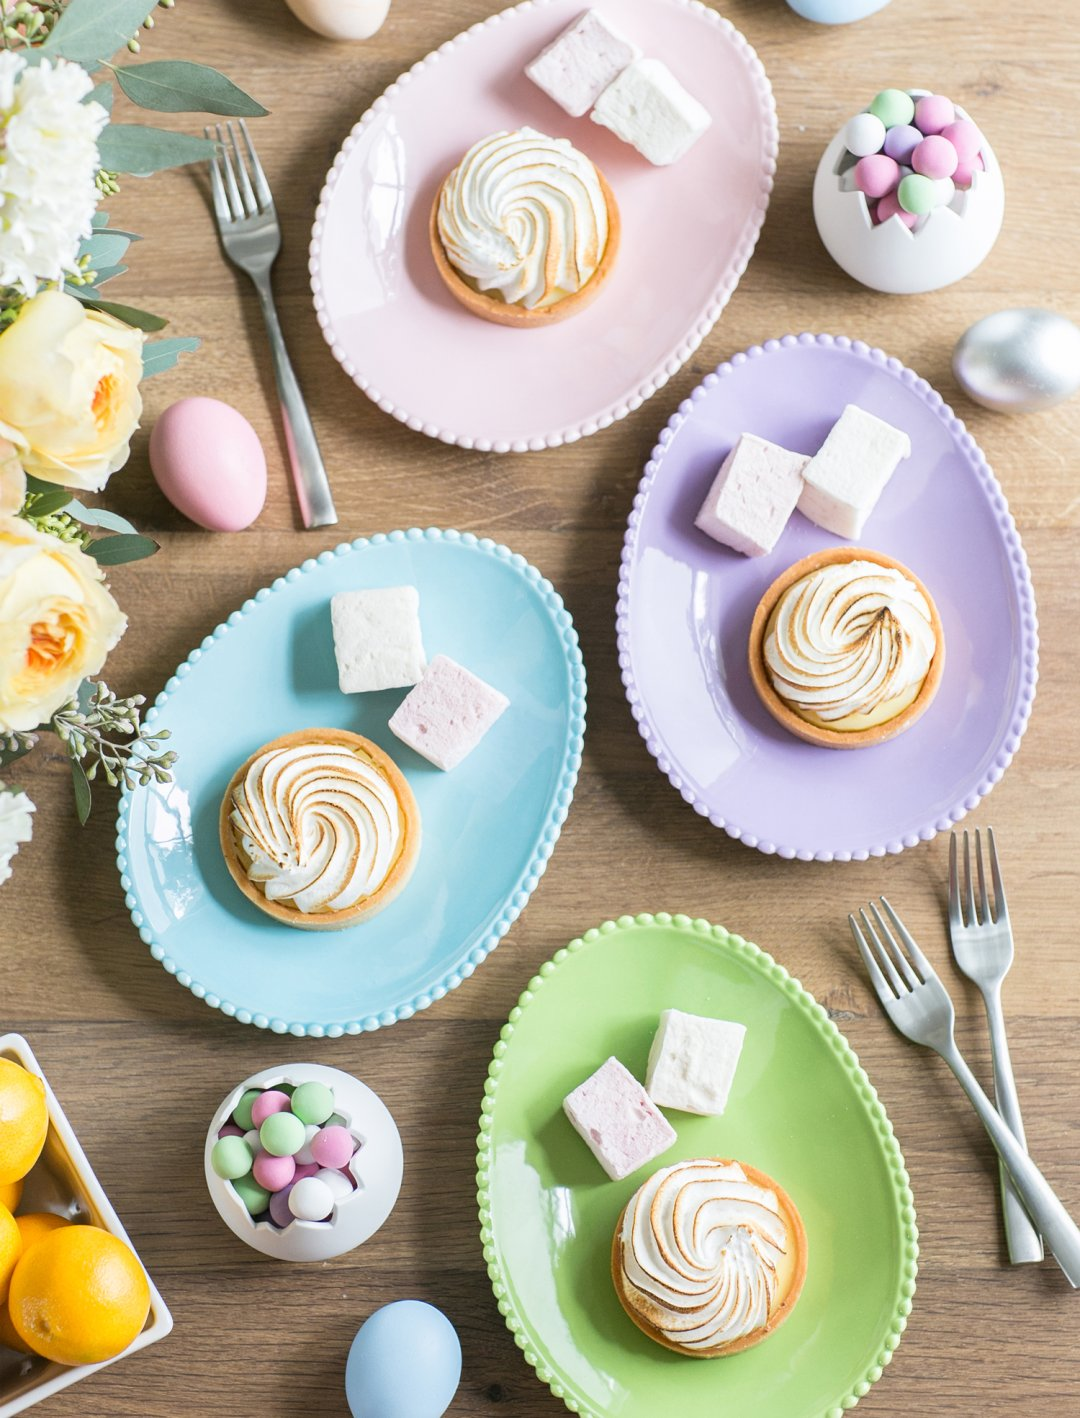 Pastel colored Easter egg appetizer plates with desserts